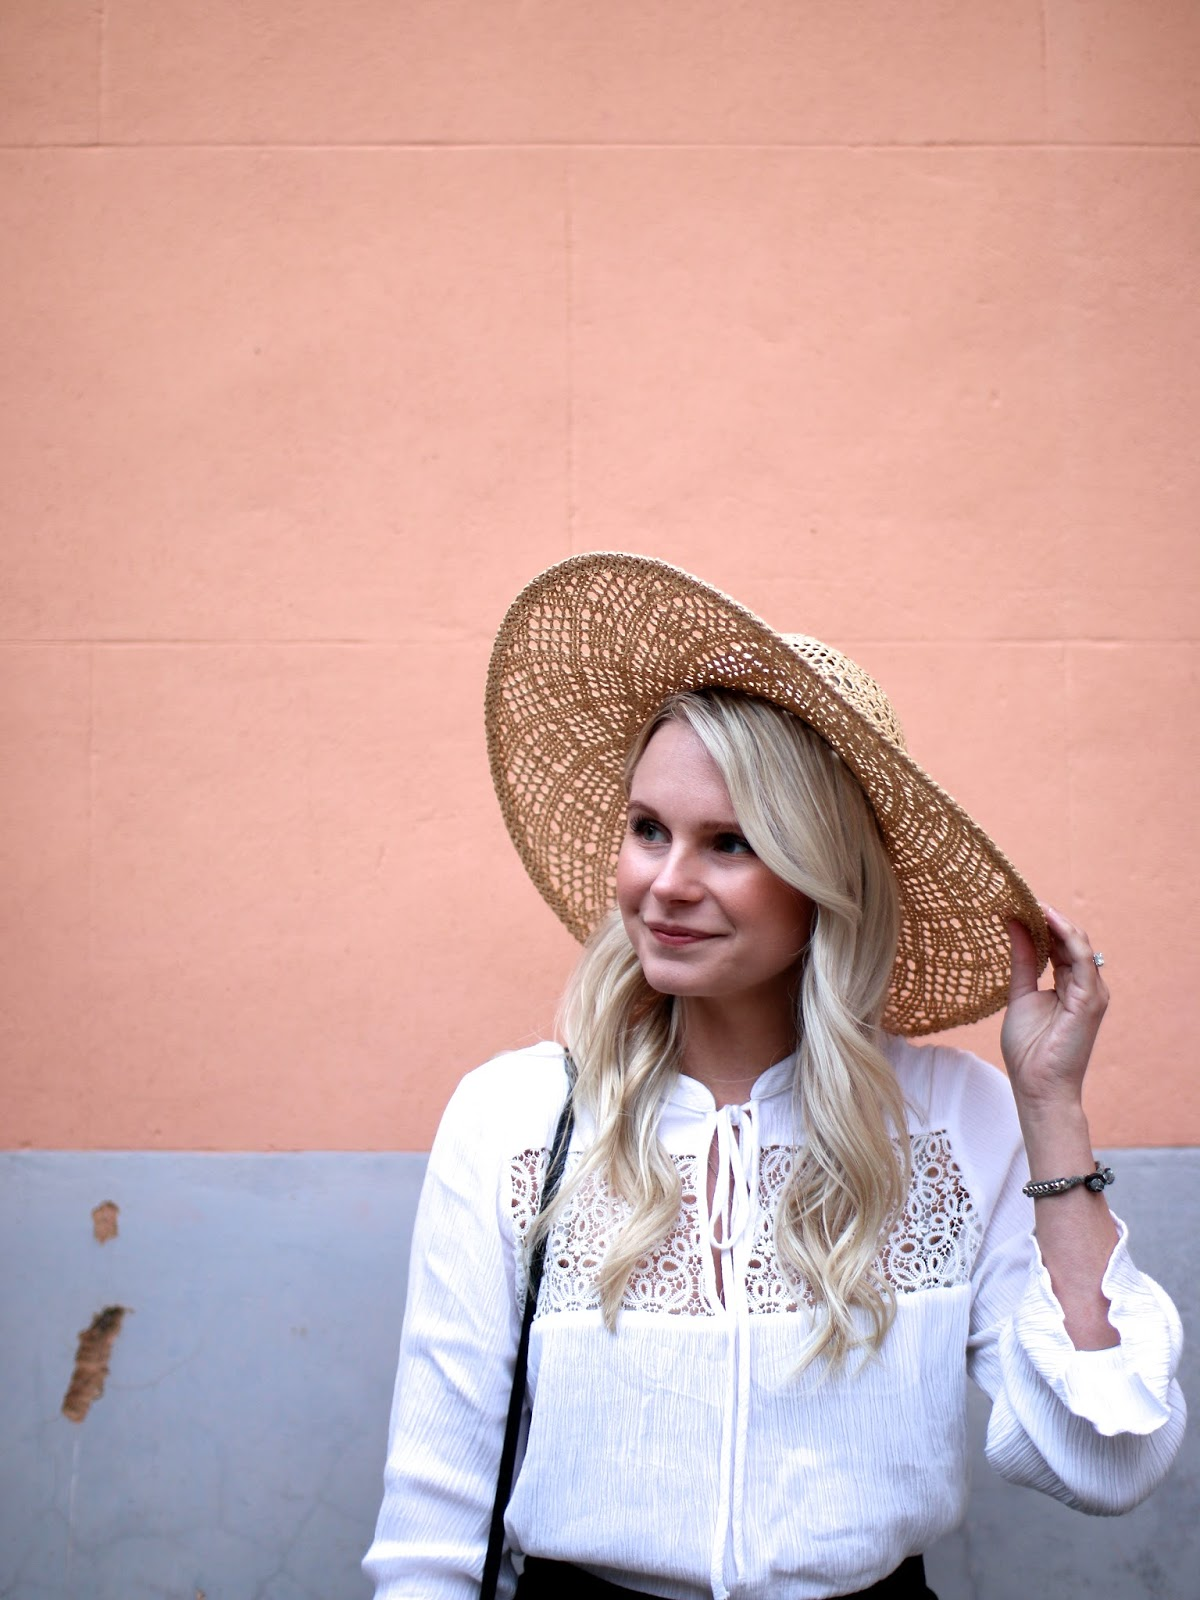 lace blouse and floppy hat